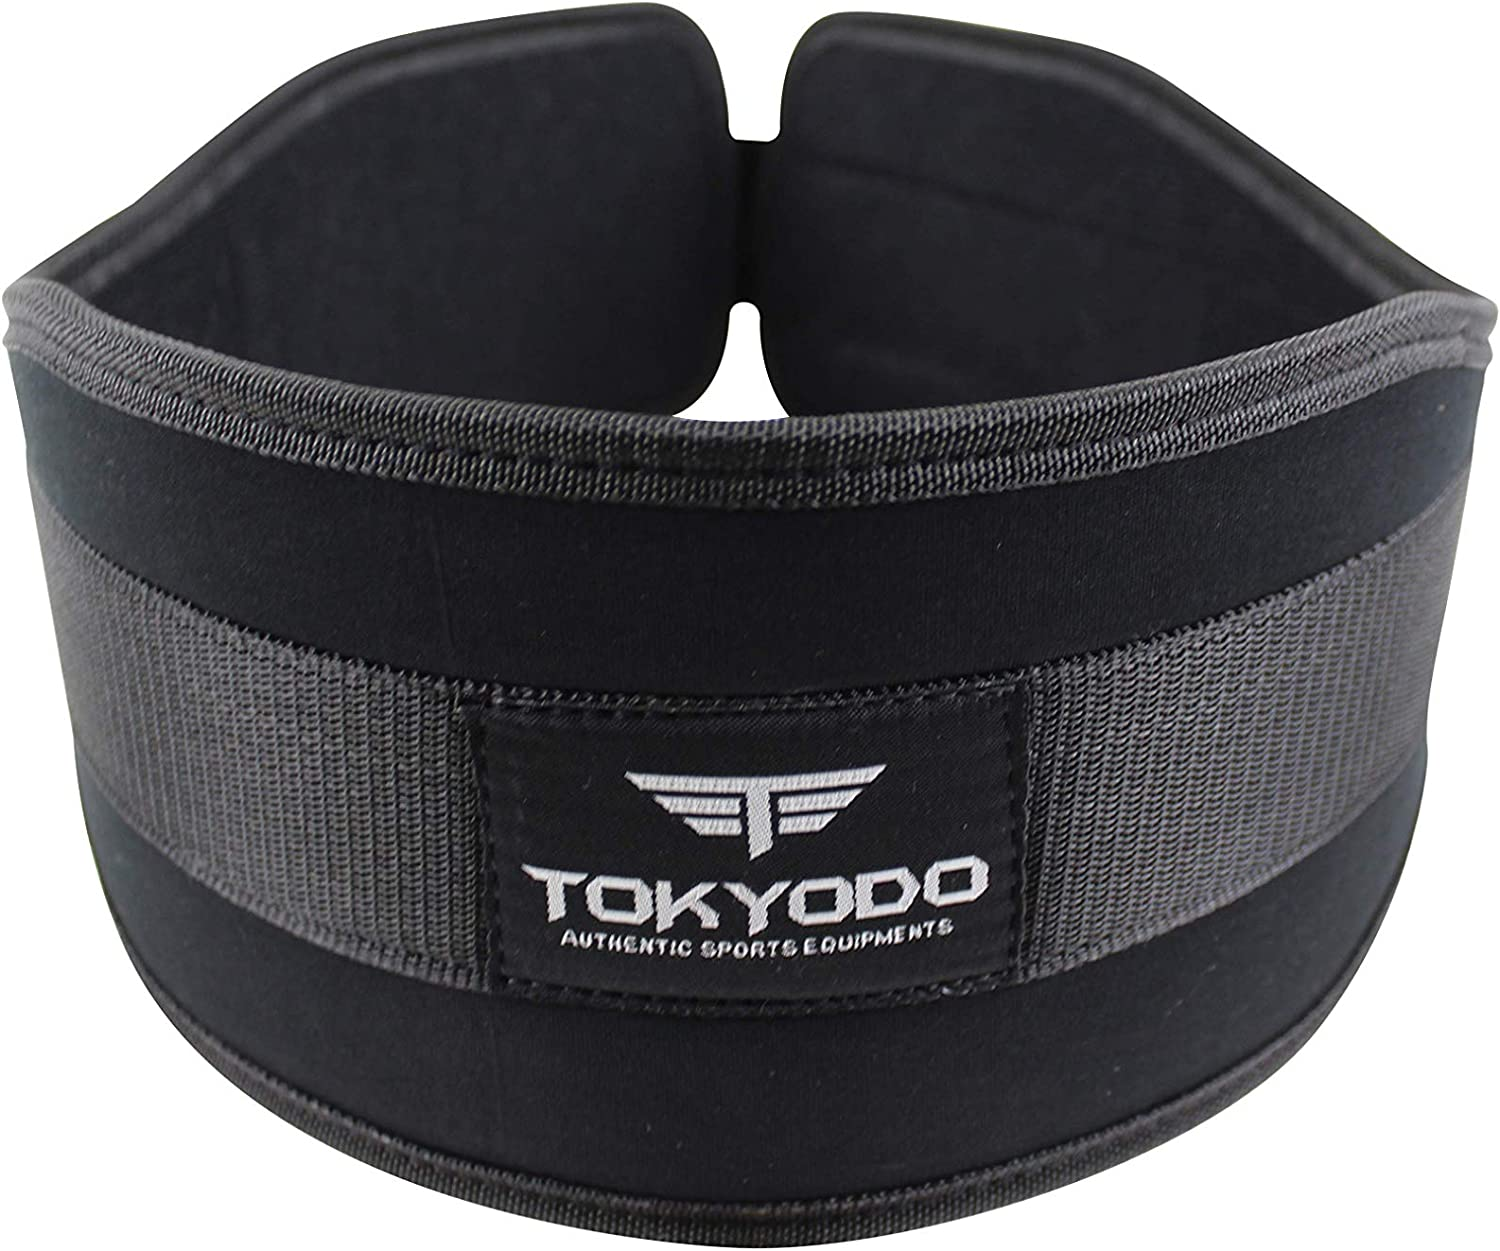 TOKYODO Weightlifting Belt for Women and Men- Weight Belt for Firm and Comfortable Lumbar and Lower Back Support- 6 inch Strength Training Belt Deadlifts Perfect for Squats Lunges